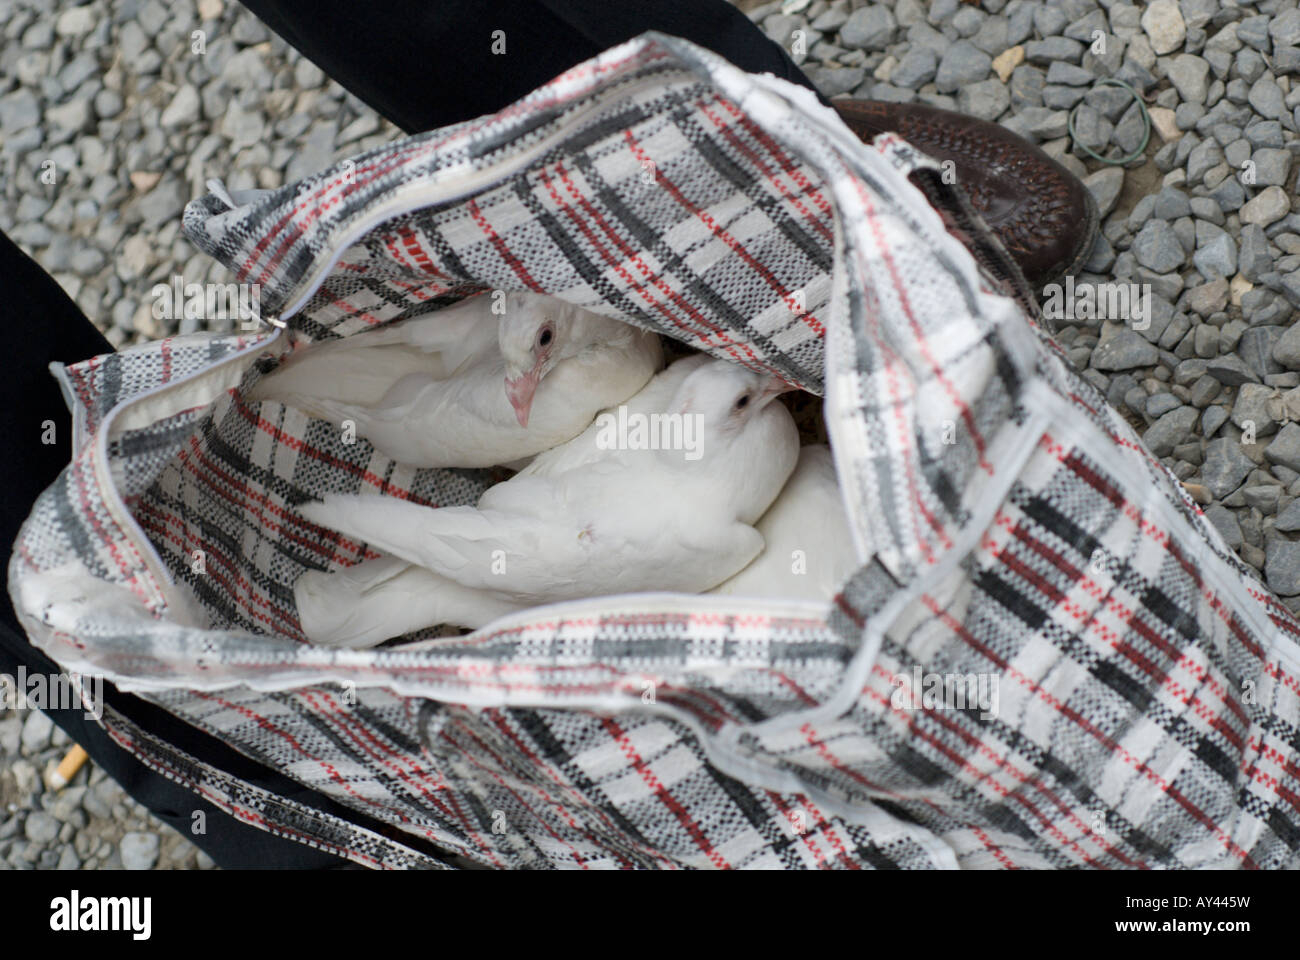 Doves For Sale >> White Racing Pigeons Or Doves For Sale In A Bag At A Street Market